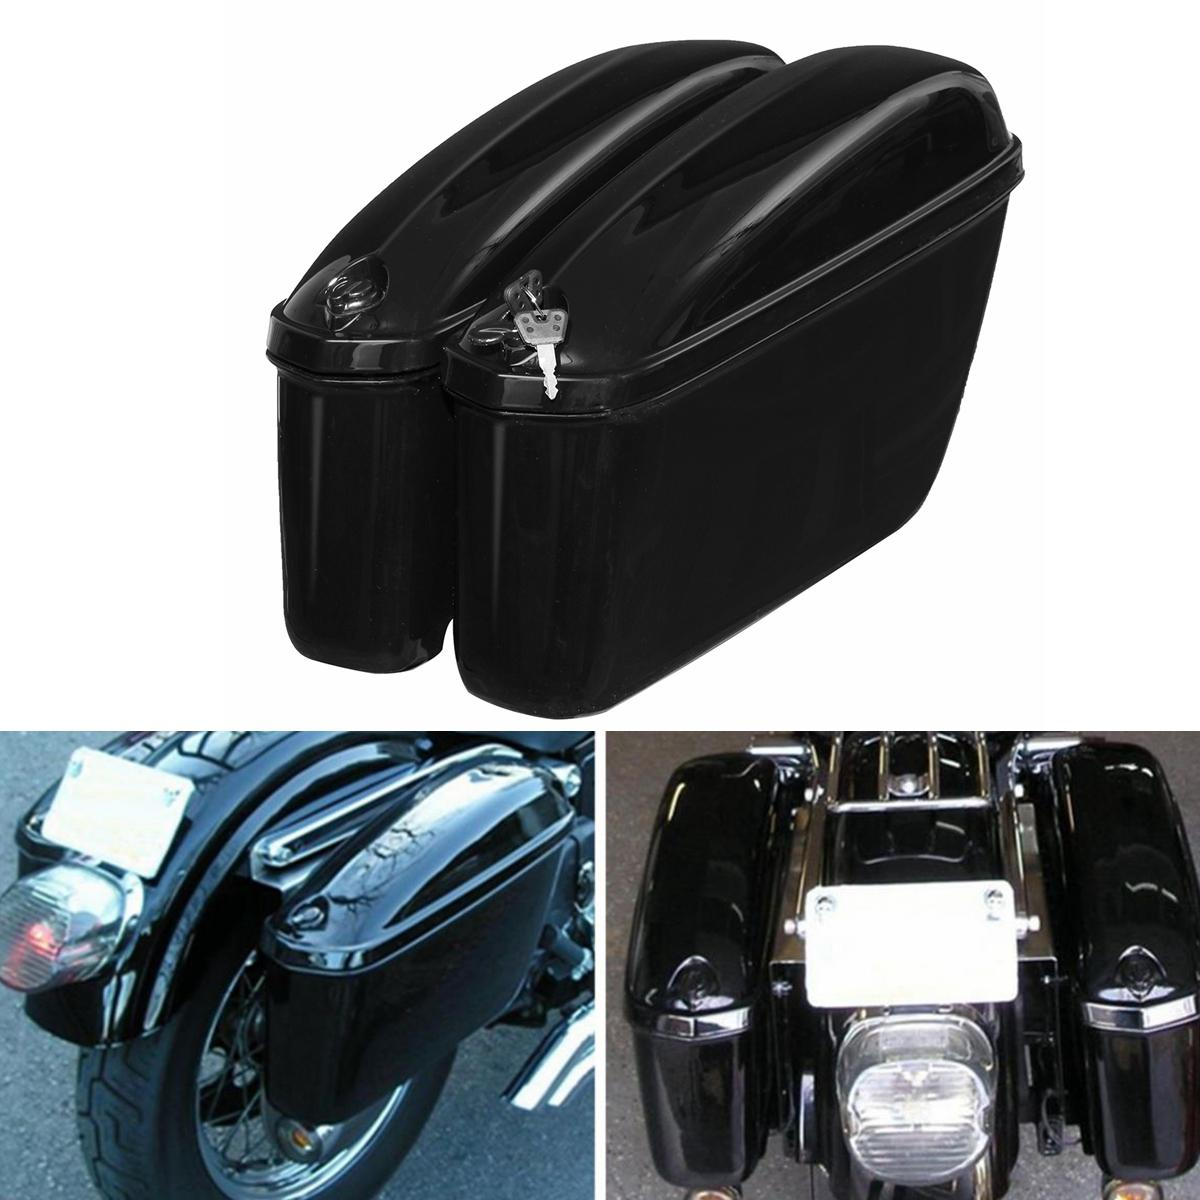 22L Black Motorcycle Side Hard Saddle Bags Saddlebags Trunk With Bracket For Honda/Harley Touring COD